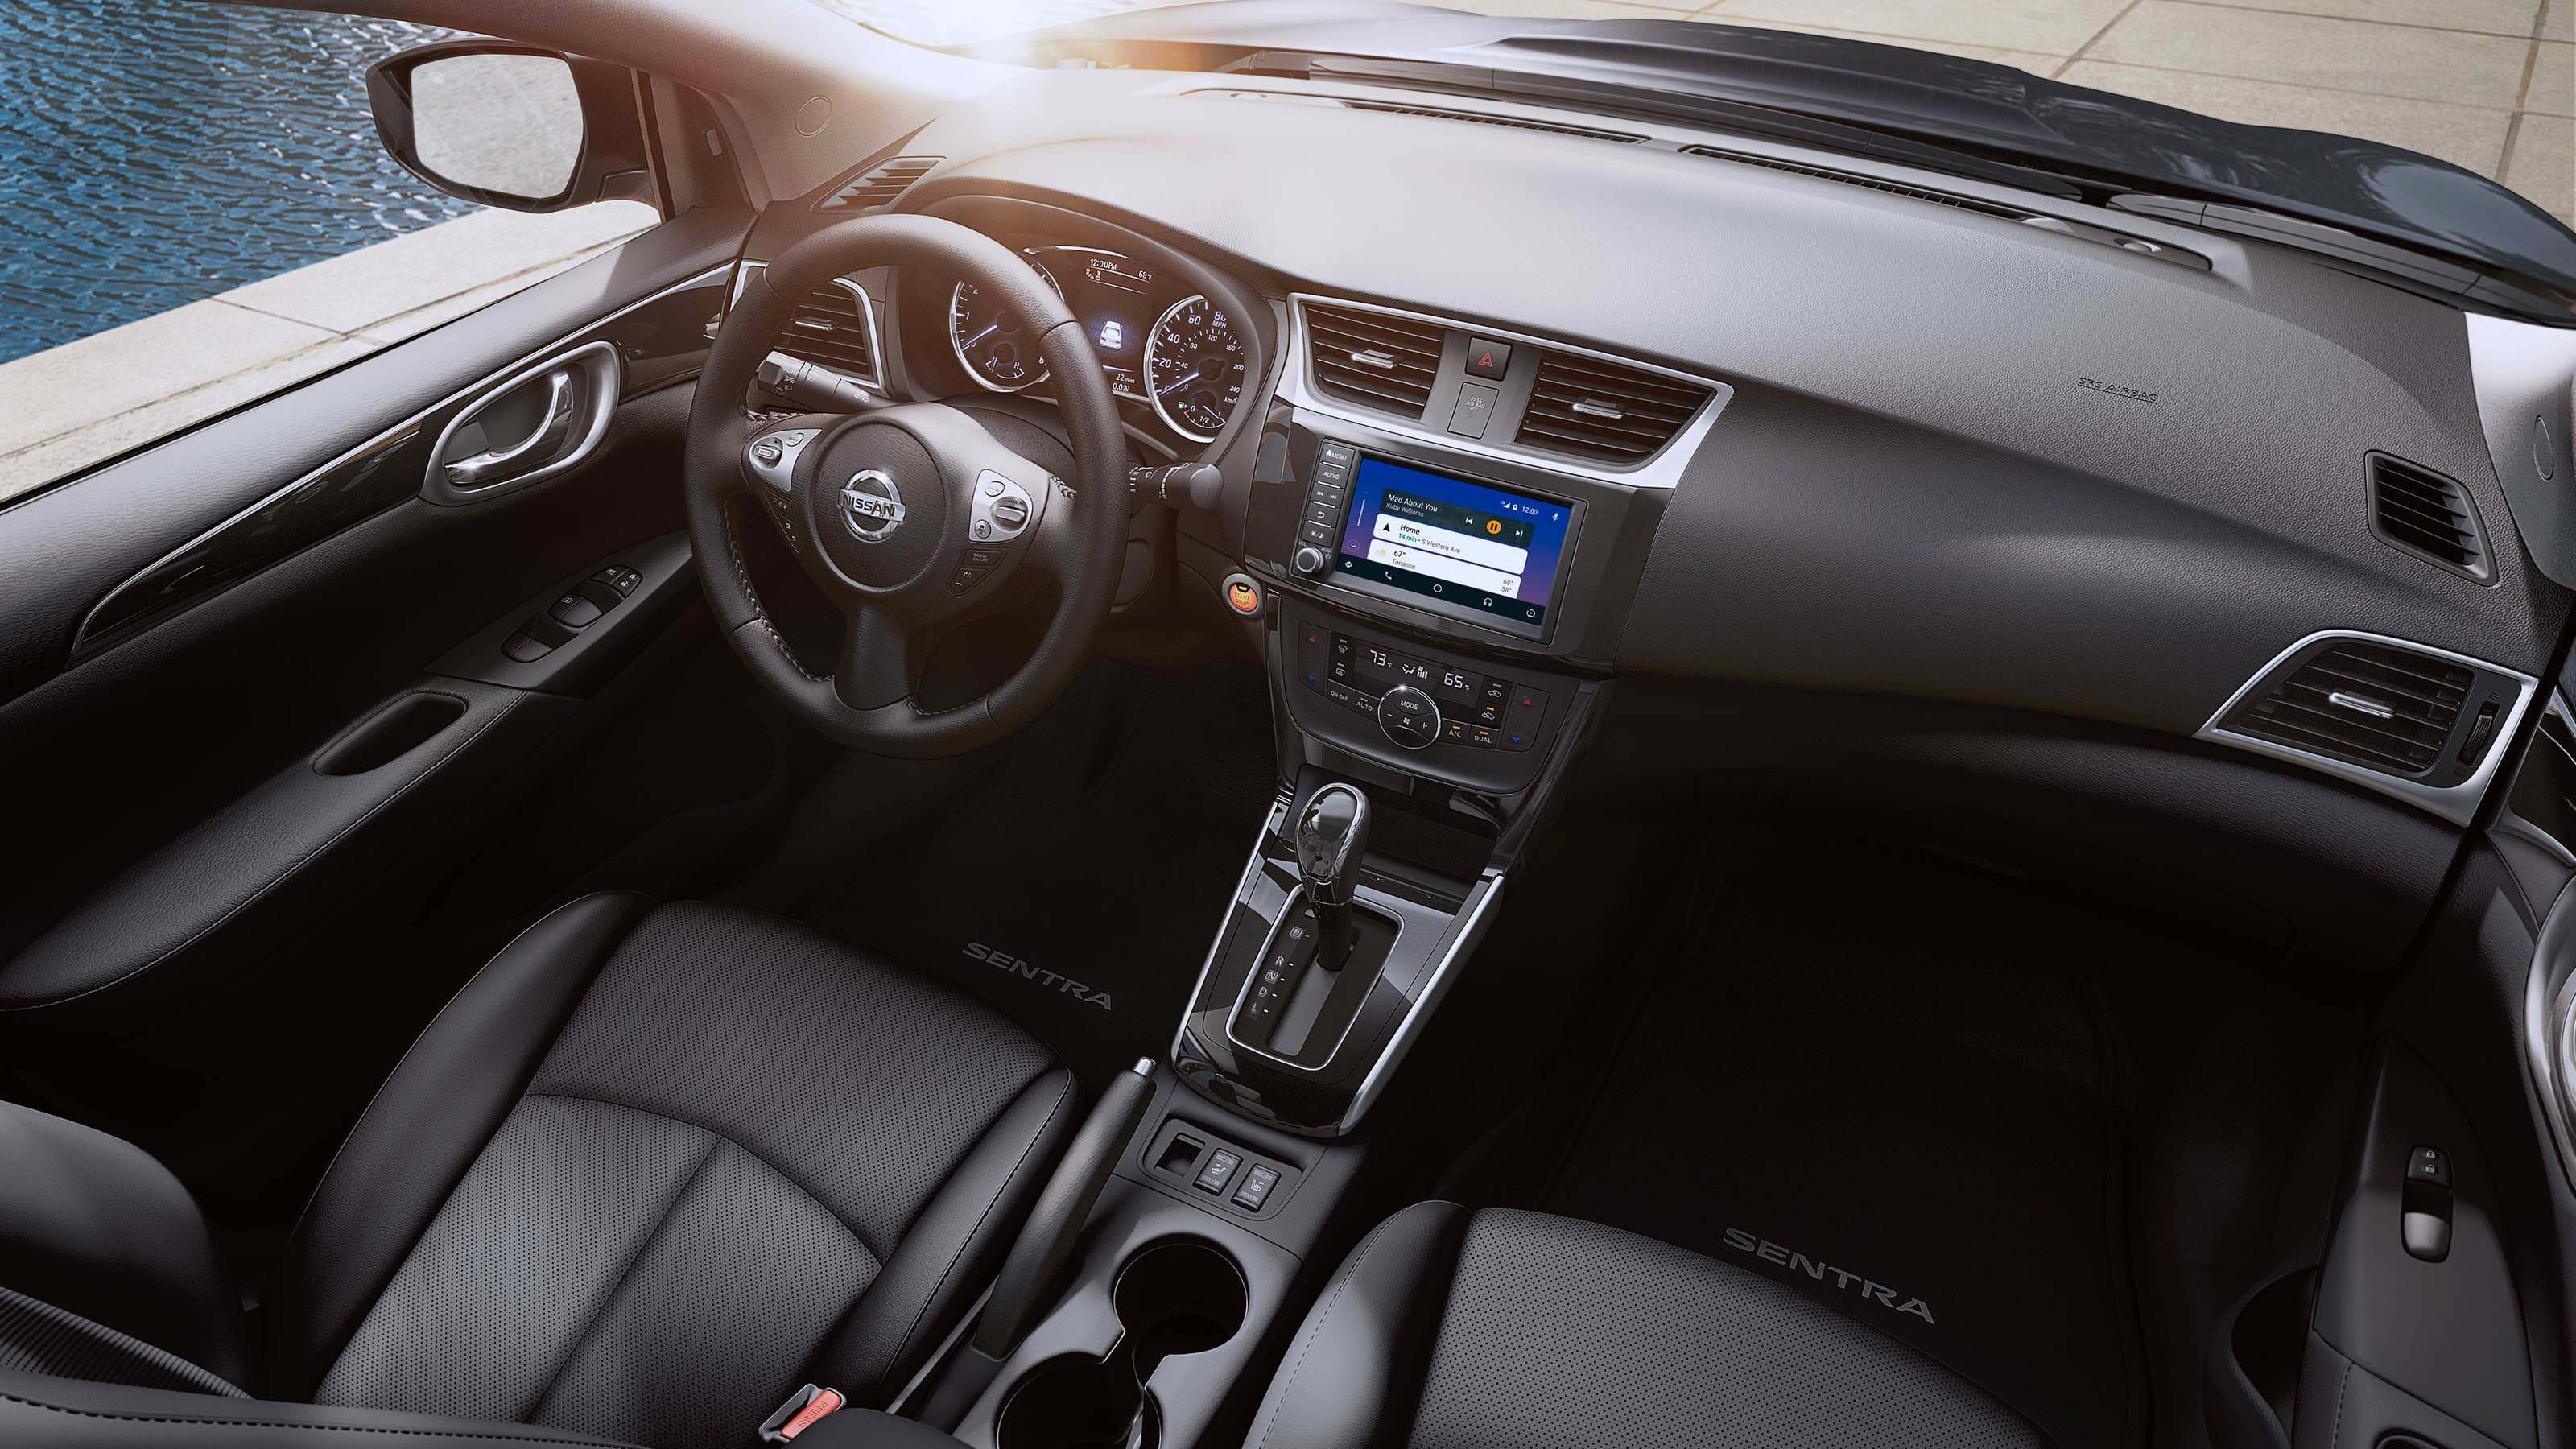 New 2019 Nissan Sentra Piano Black Trim and Metallic Accents